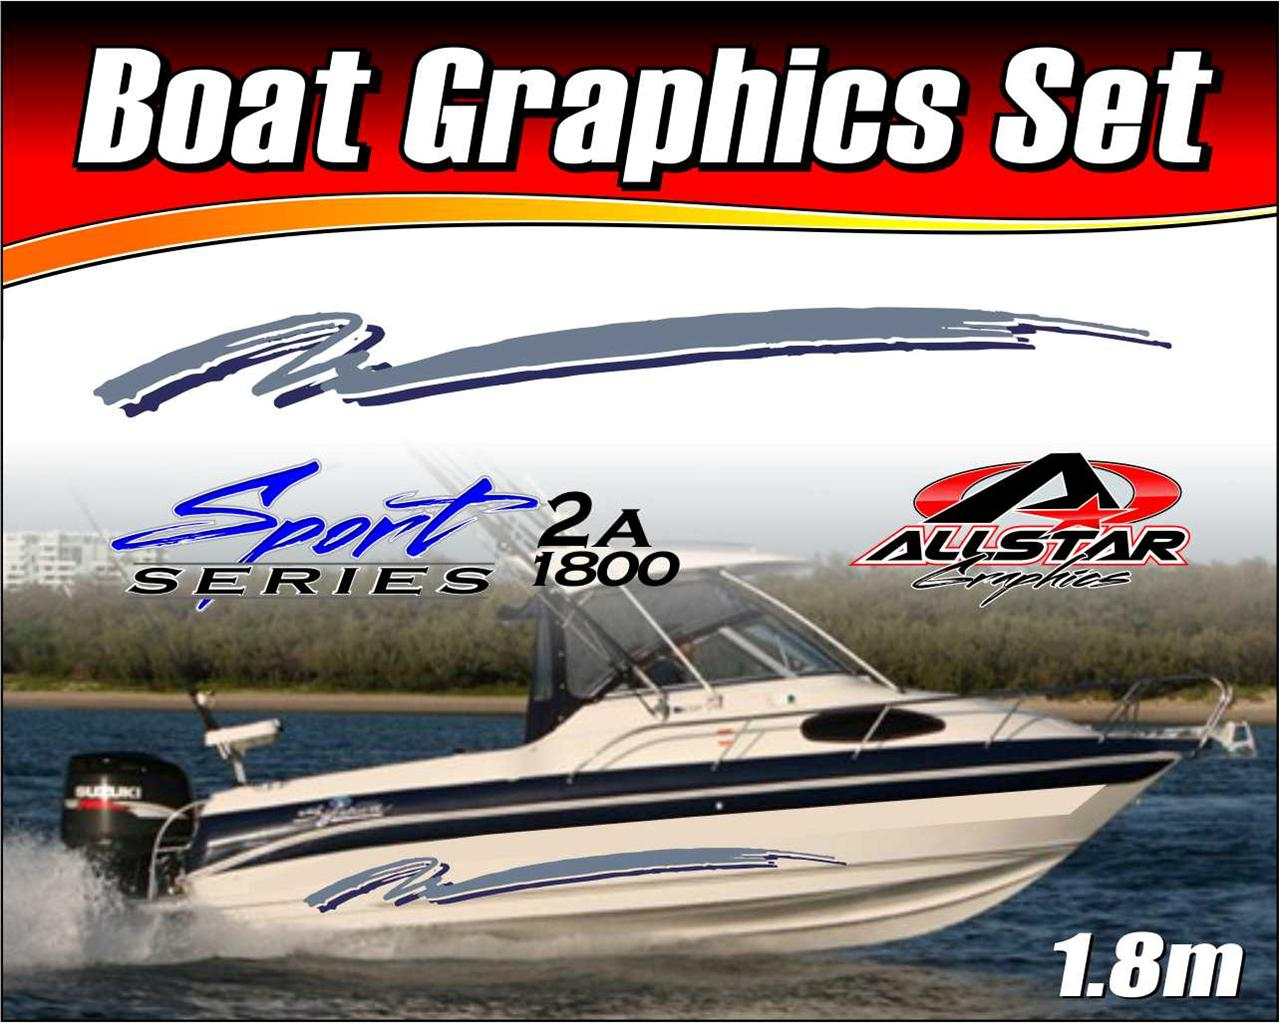 Boat-Graphic-Sticker-Kit-Vinyl-stripe-decal-for-Marine-or-Automotive-SS-2A1800